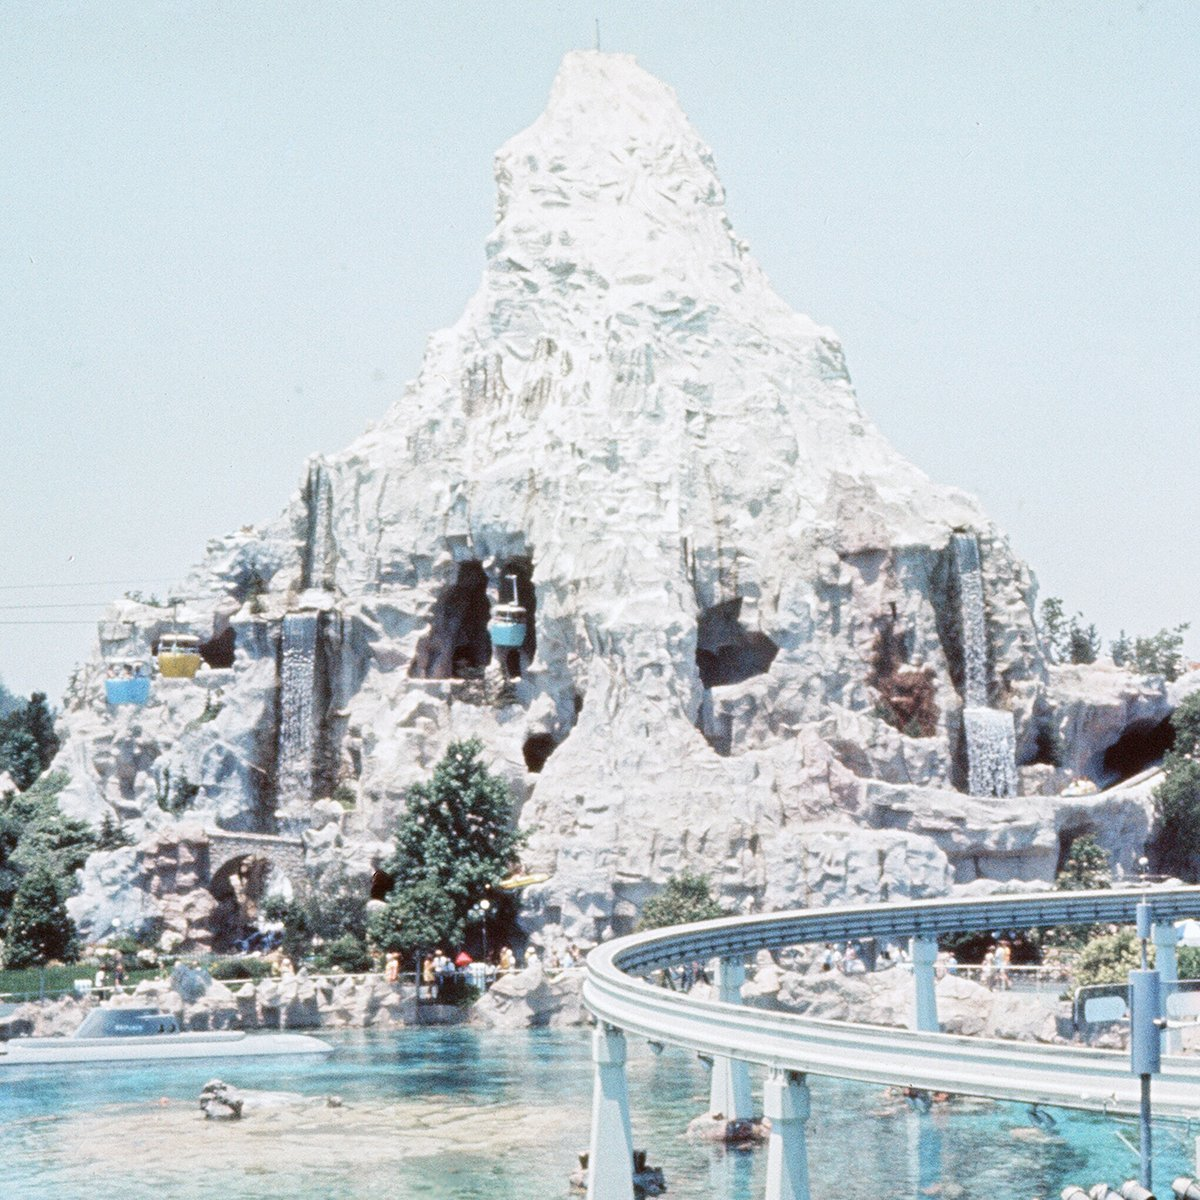 Slide 5 of 19: One of the most iconic rides at Disneyland, the Matterhorn coaster opened in 1959—and it still runs today! Back in the '70s, guests could travel through the mountain, too, as part of the Skyway ride. Here are the things that are still happening at Disney World despite park closures.